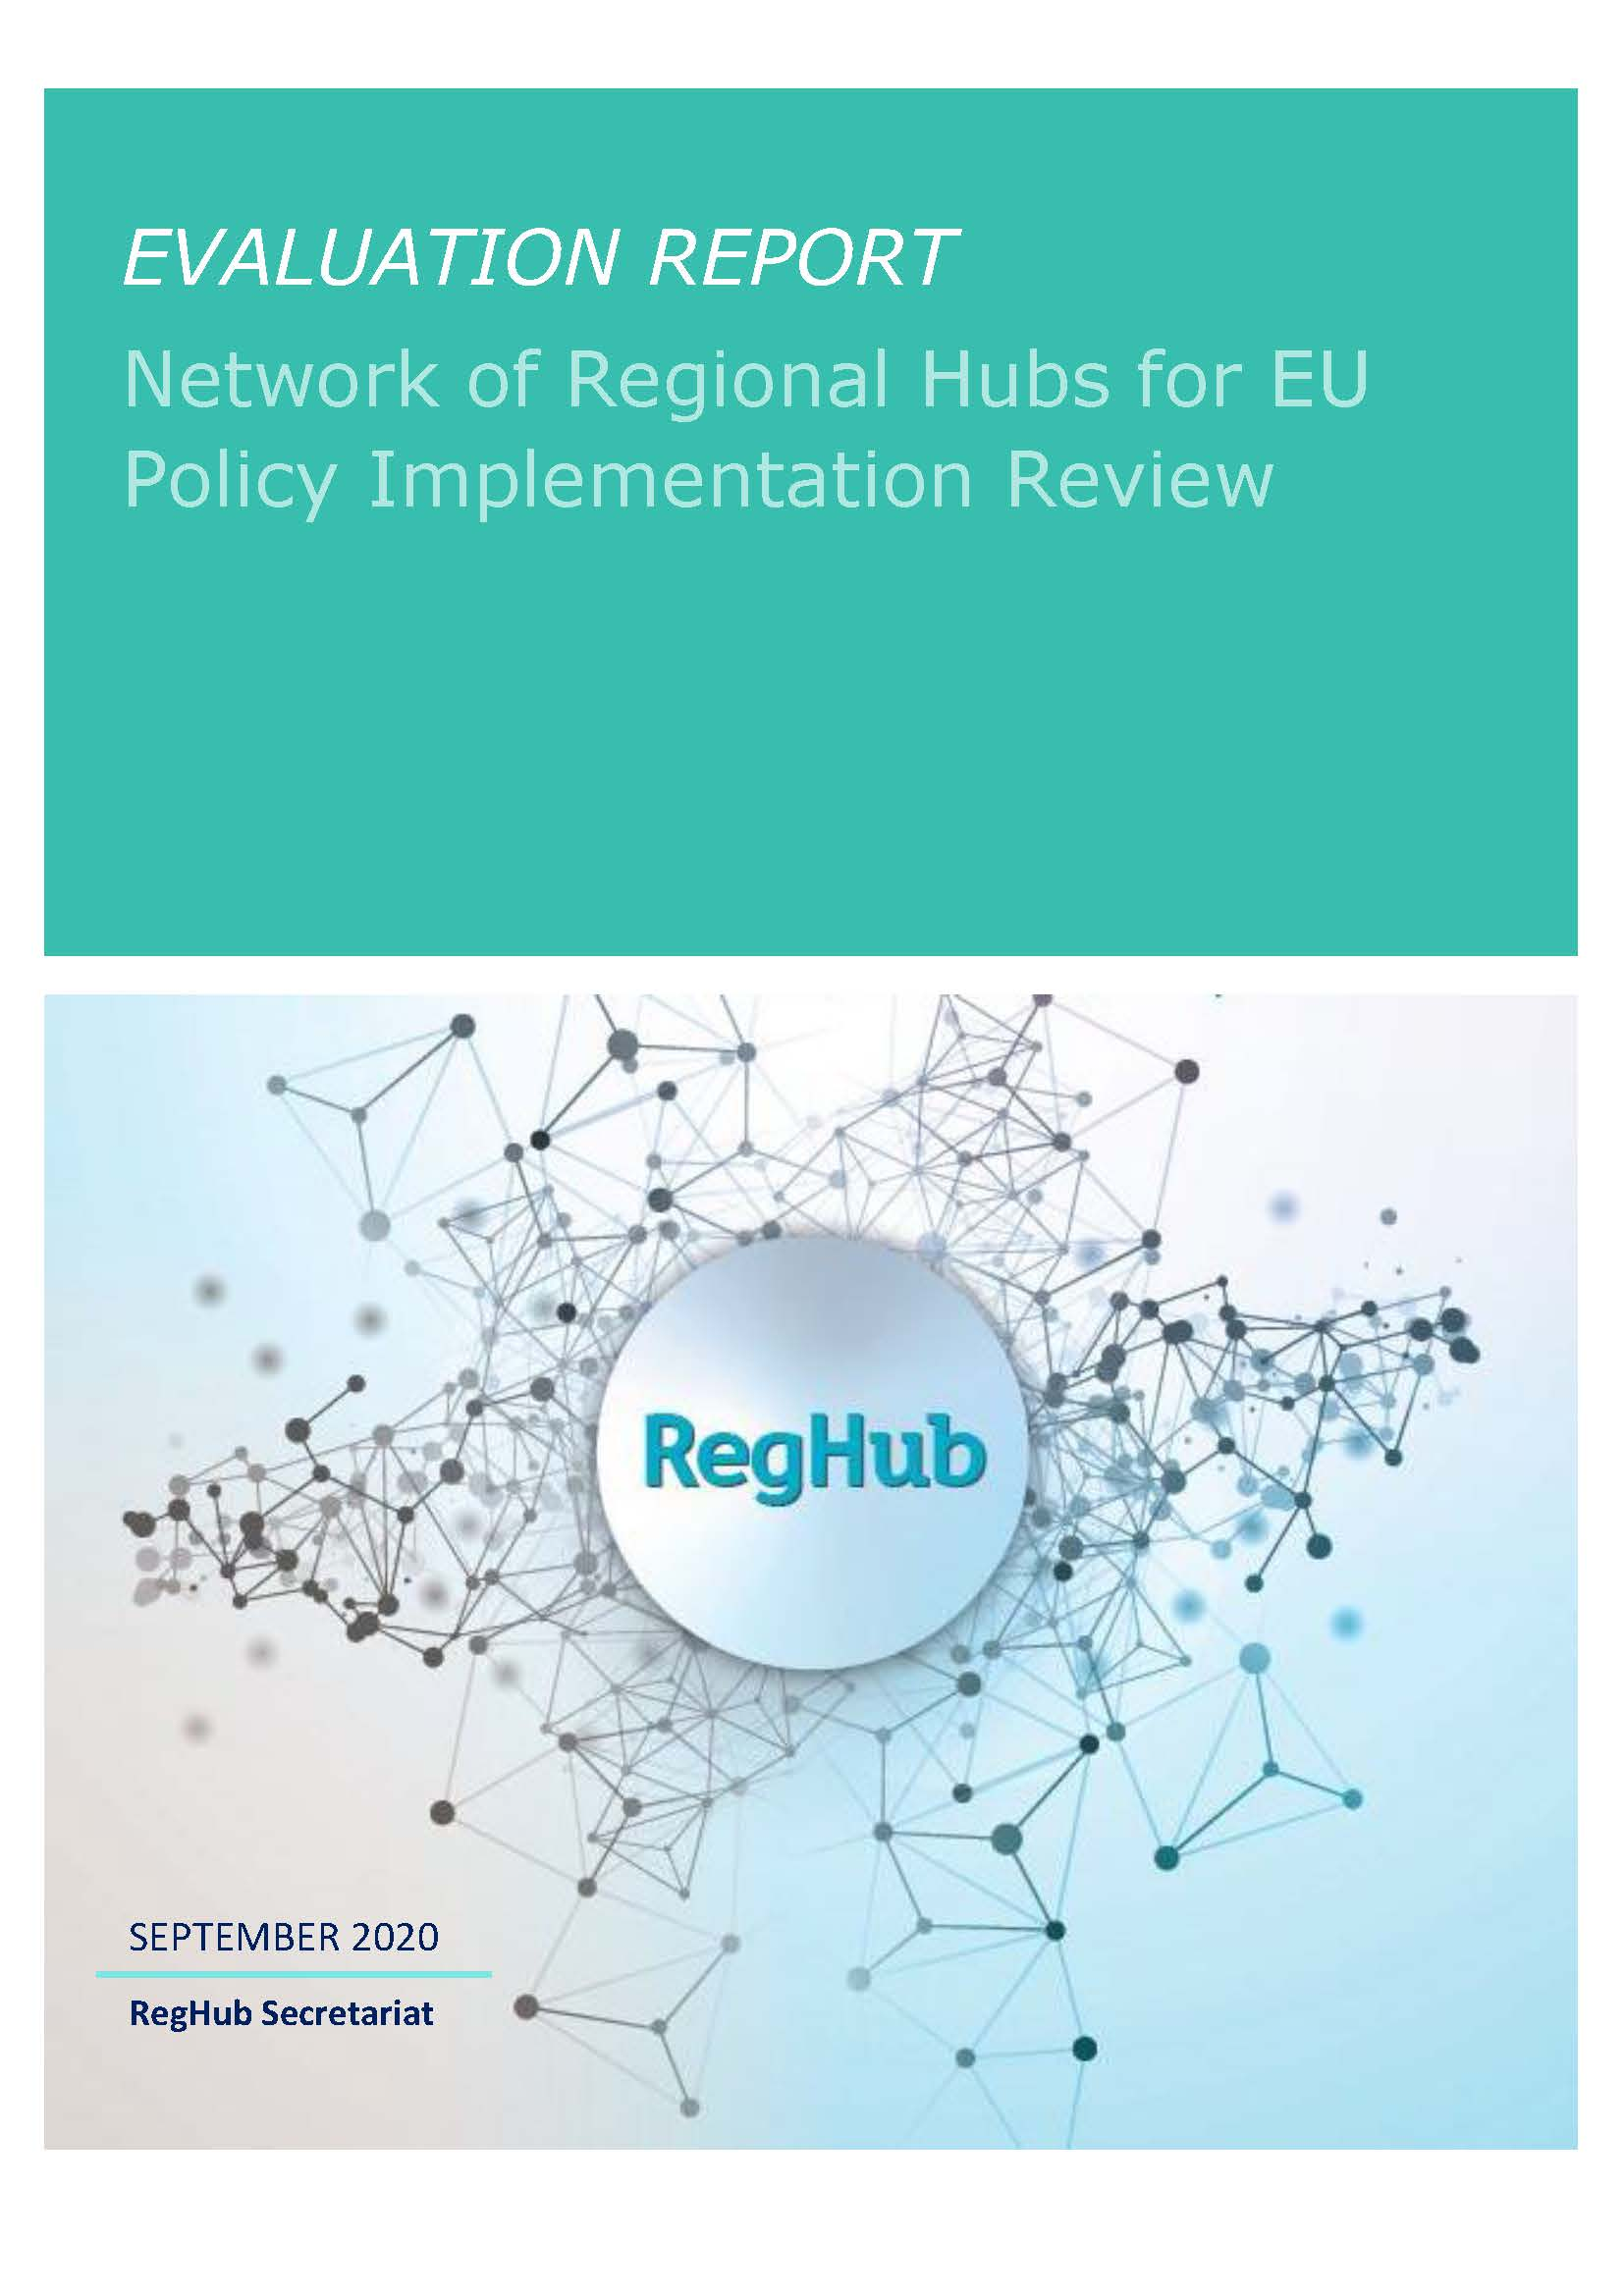 RegHub evaluation report published